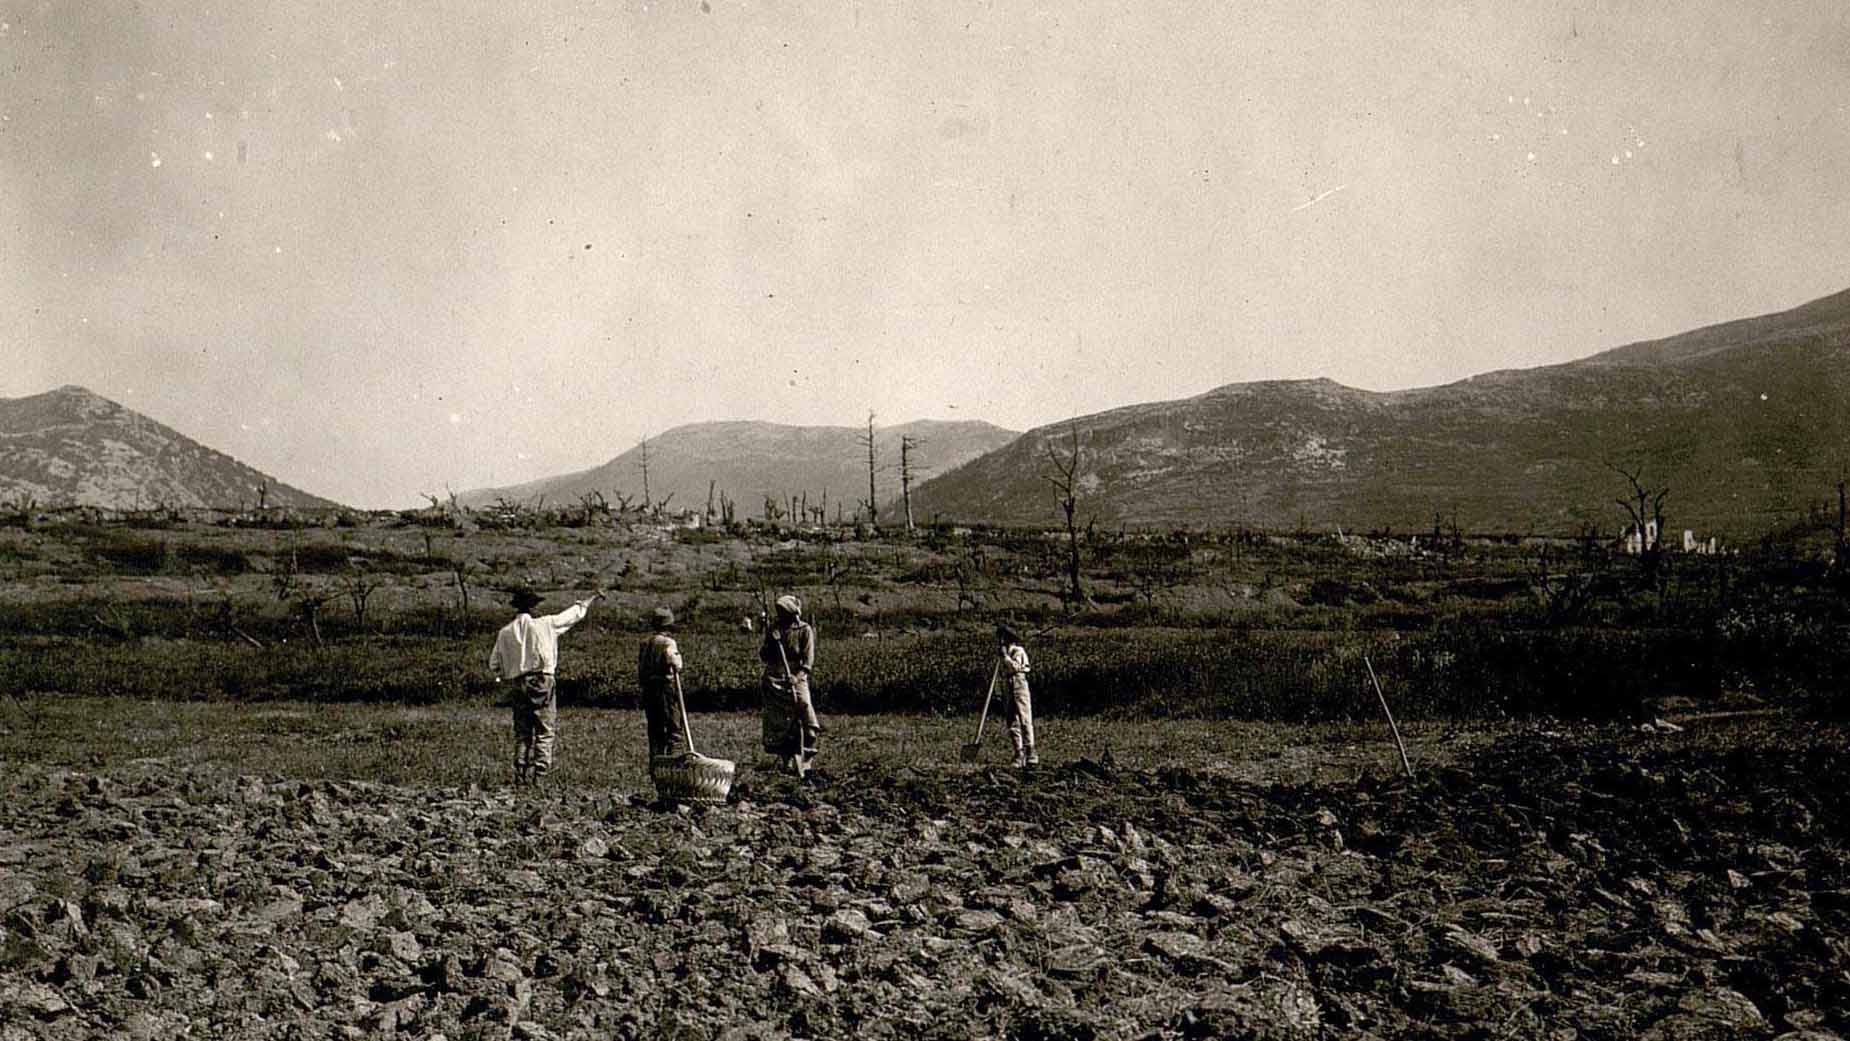 Returned local inhabitants cultivating a field in a devastated area (detail)